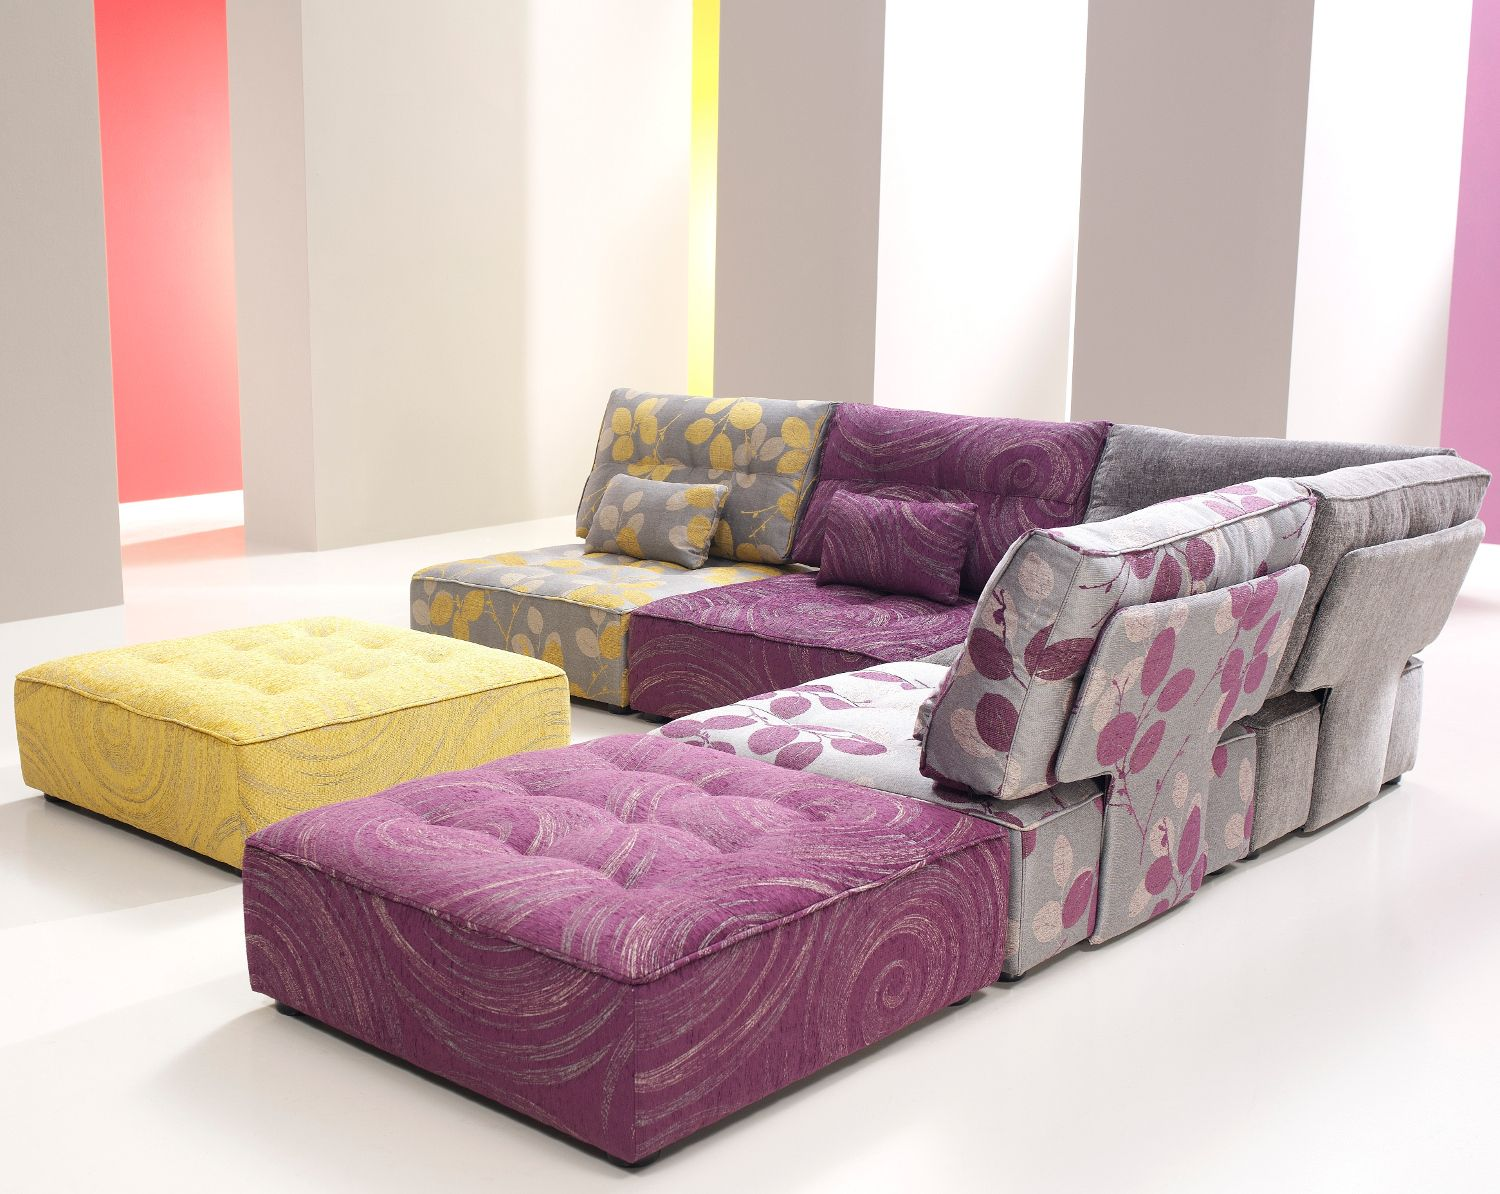 The Fama Arianne Sofa Is A Fun Modern Modular Sofa Design Comprising Of  Simple Elements,